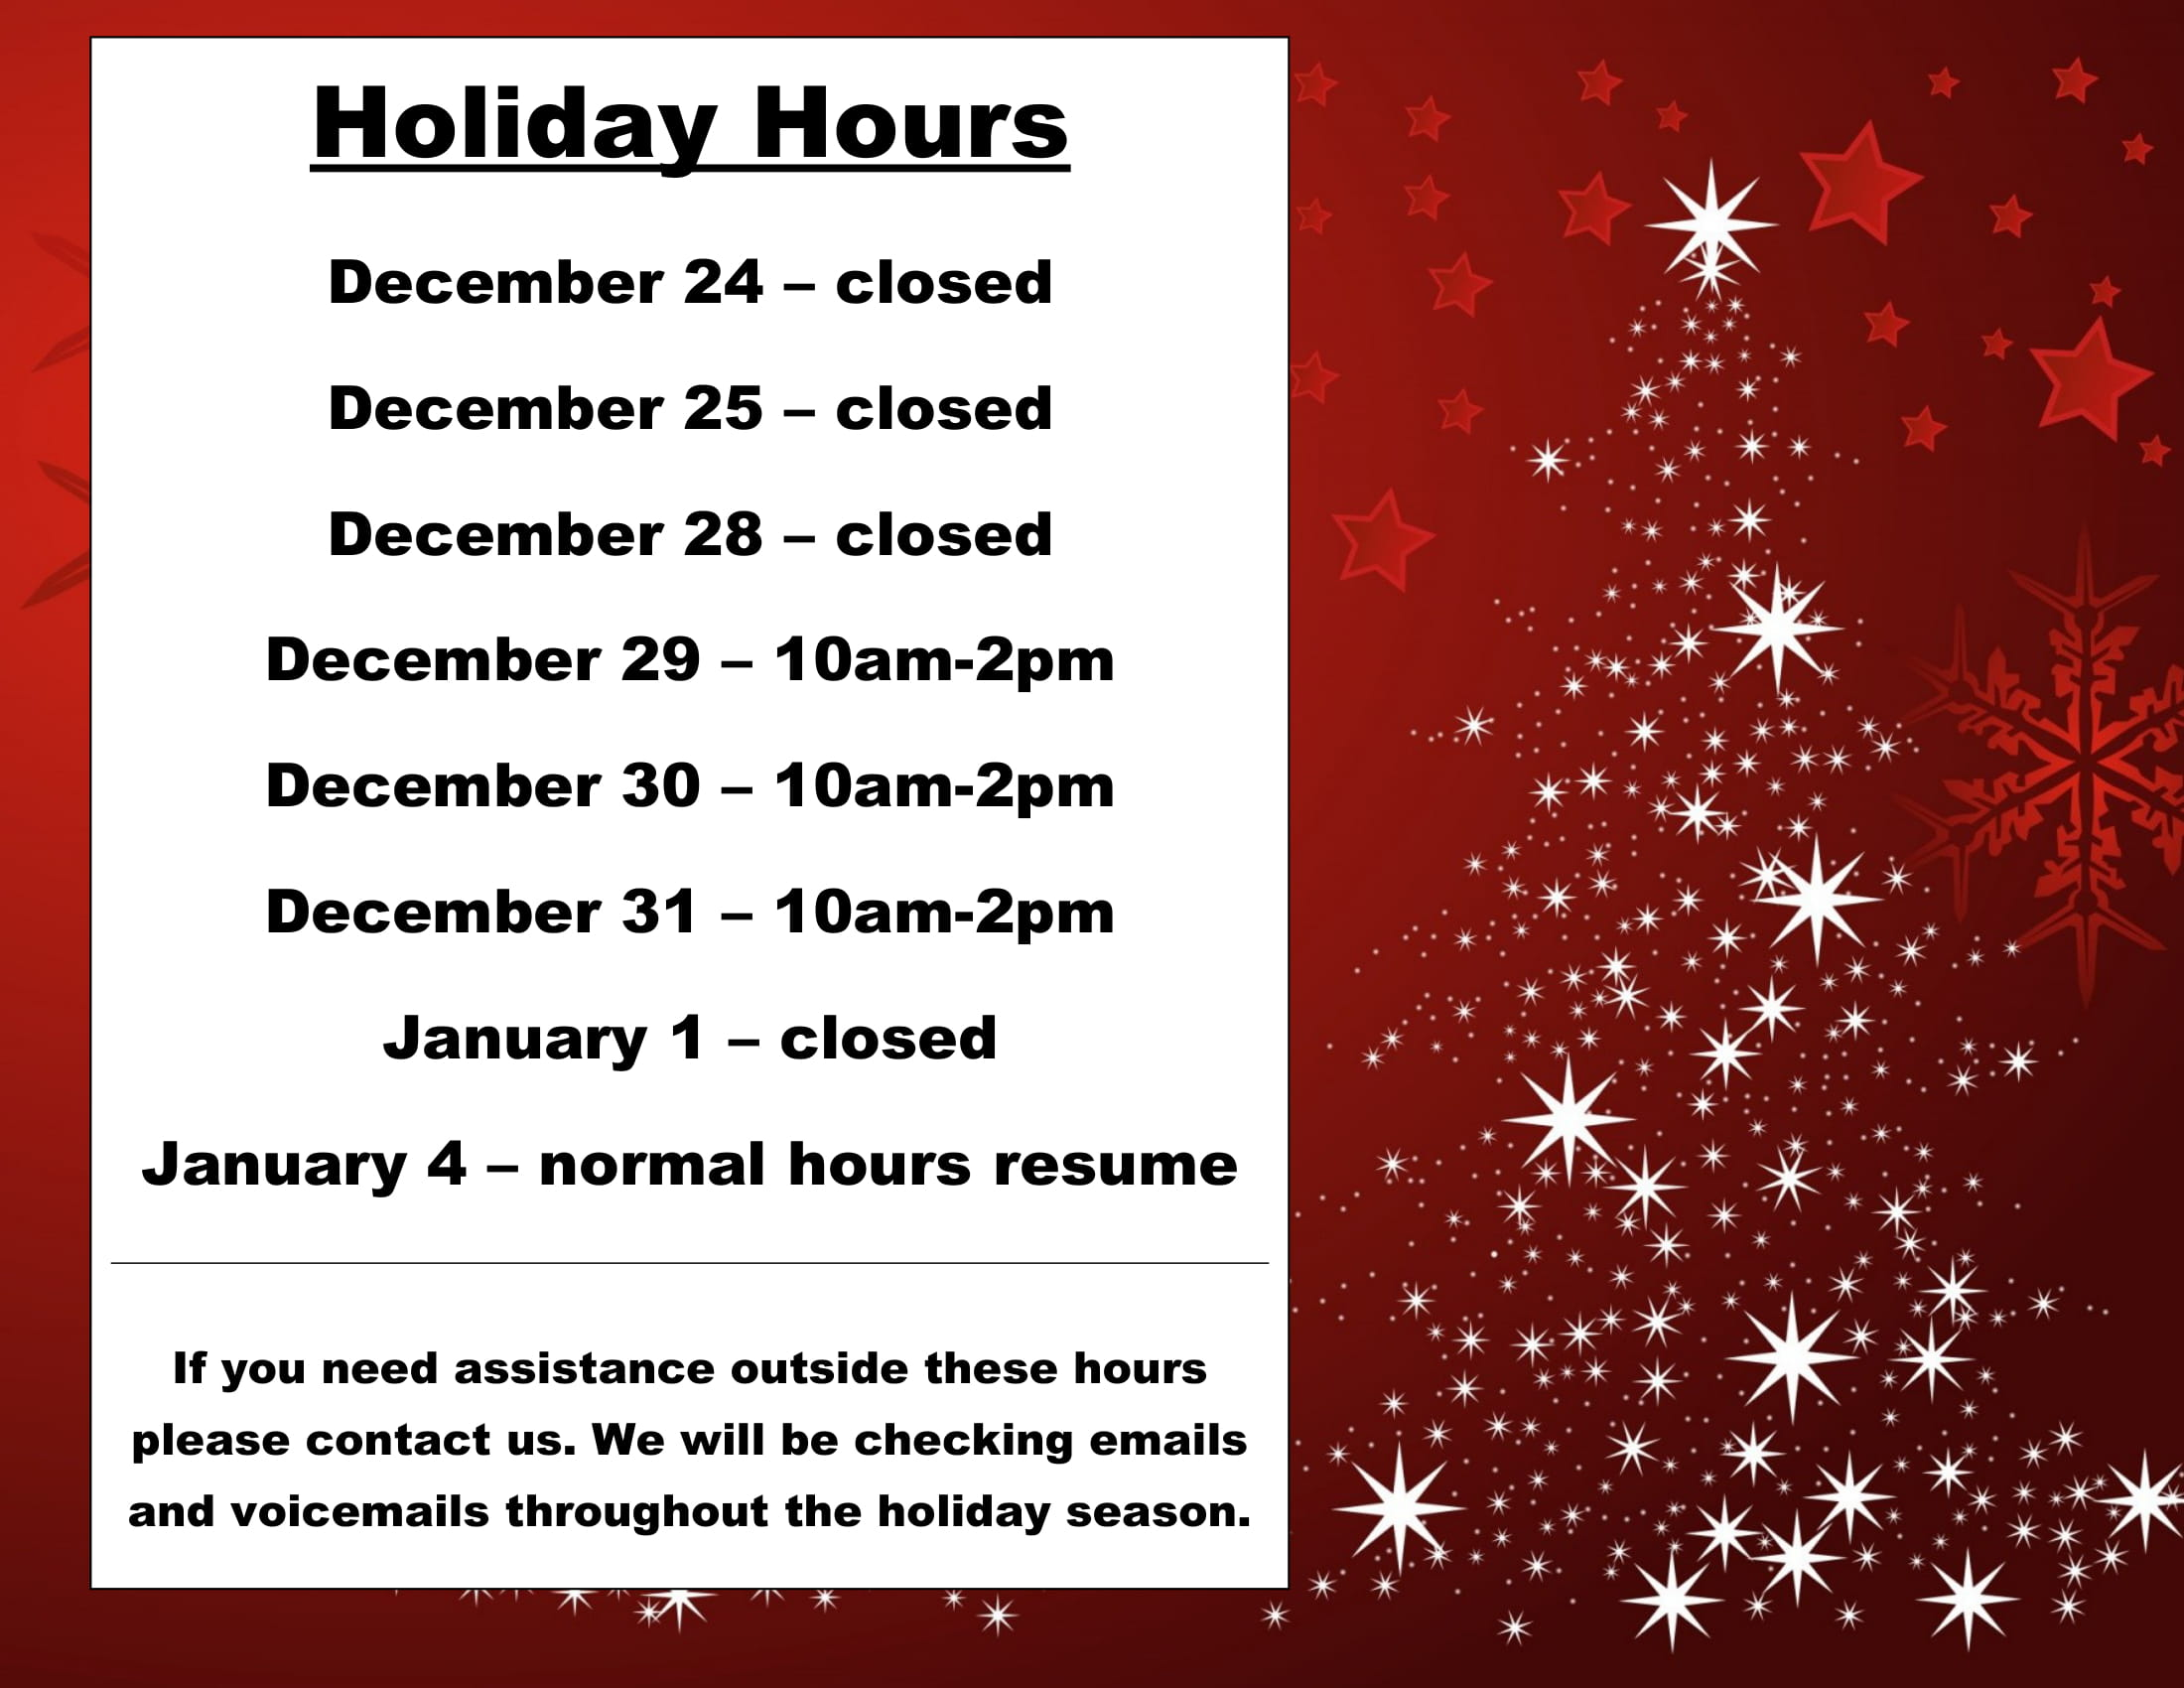 Holiday Hours - Image 1